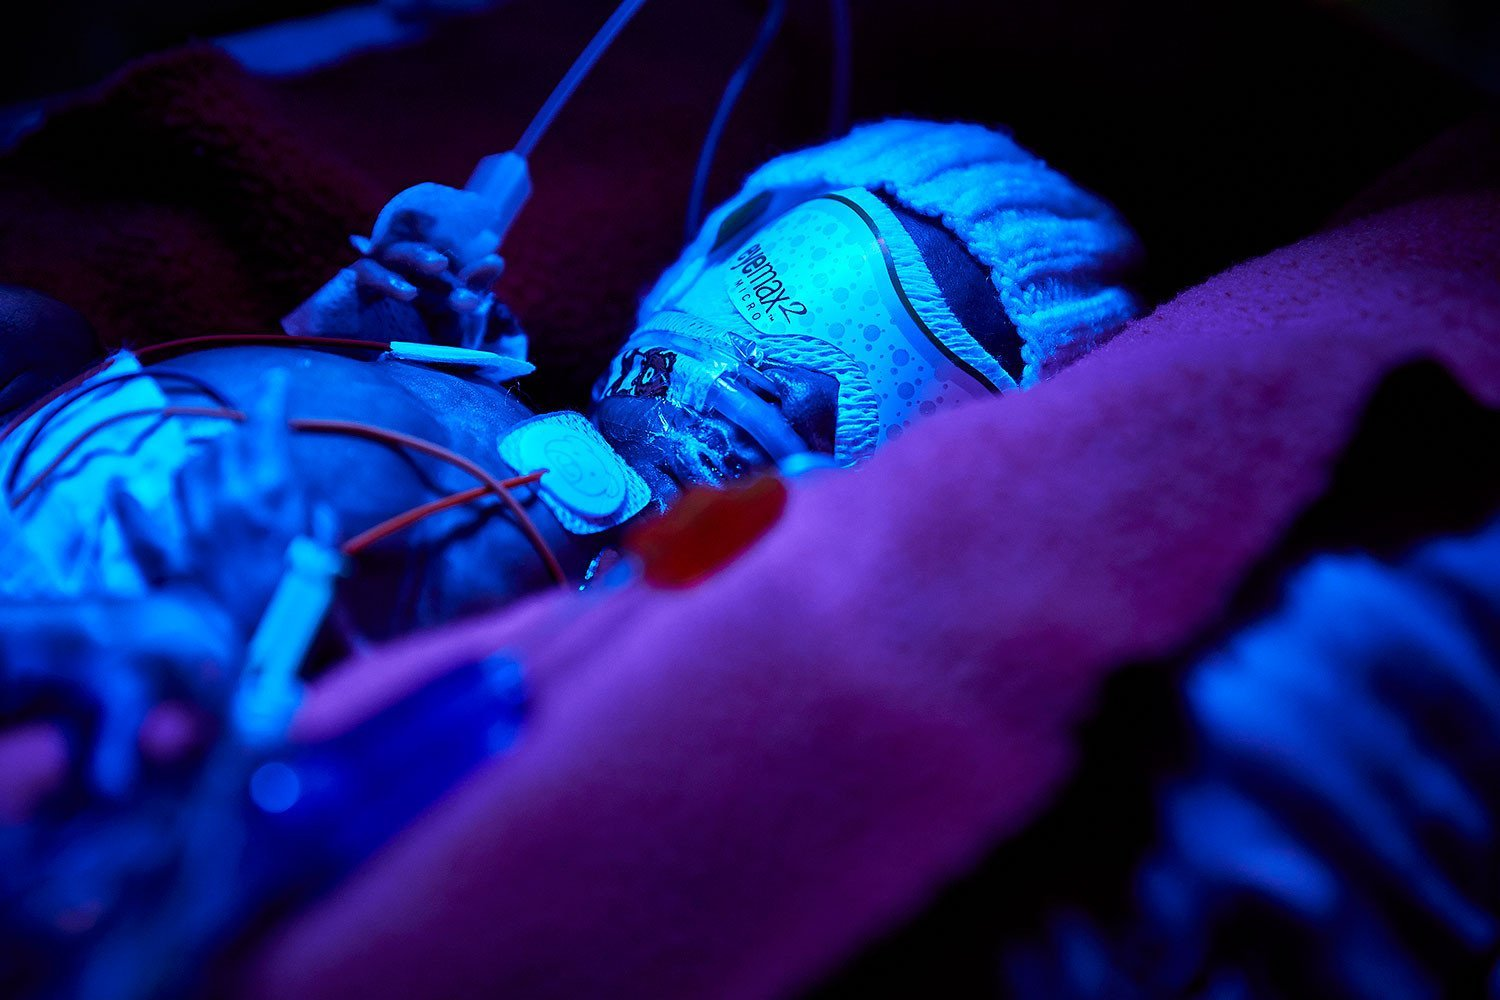 Premature baby under a UV light